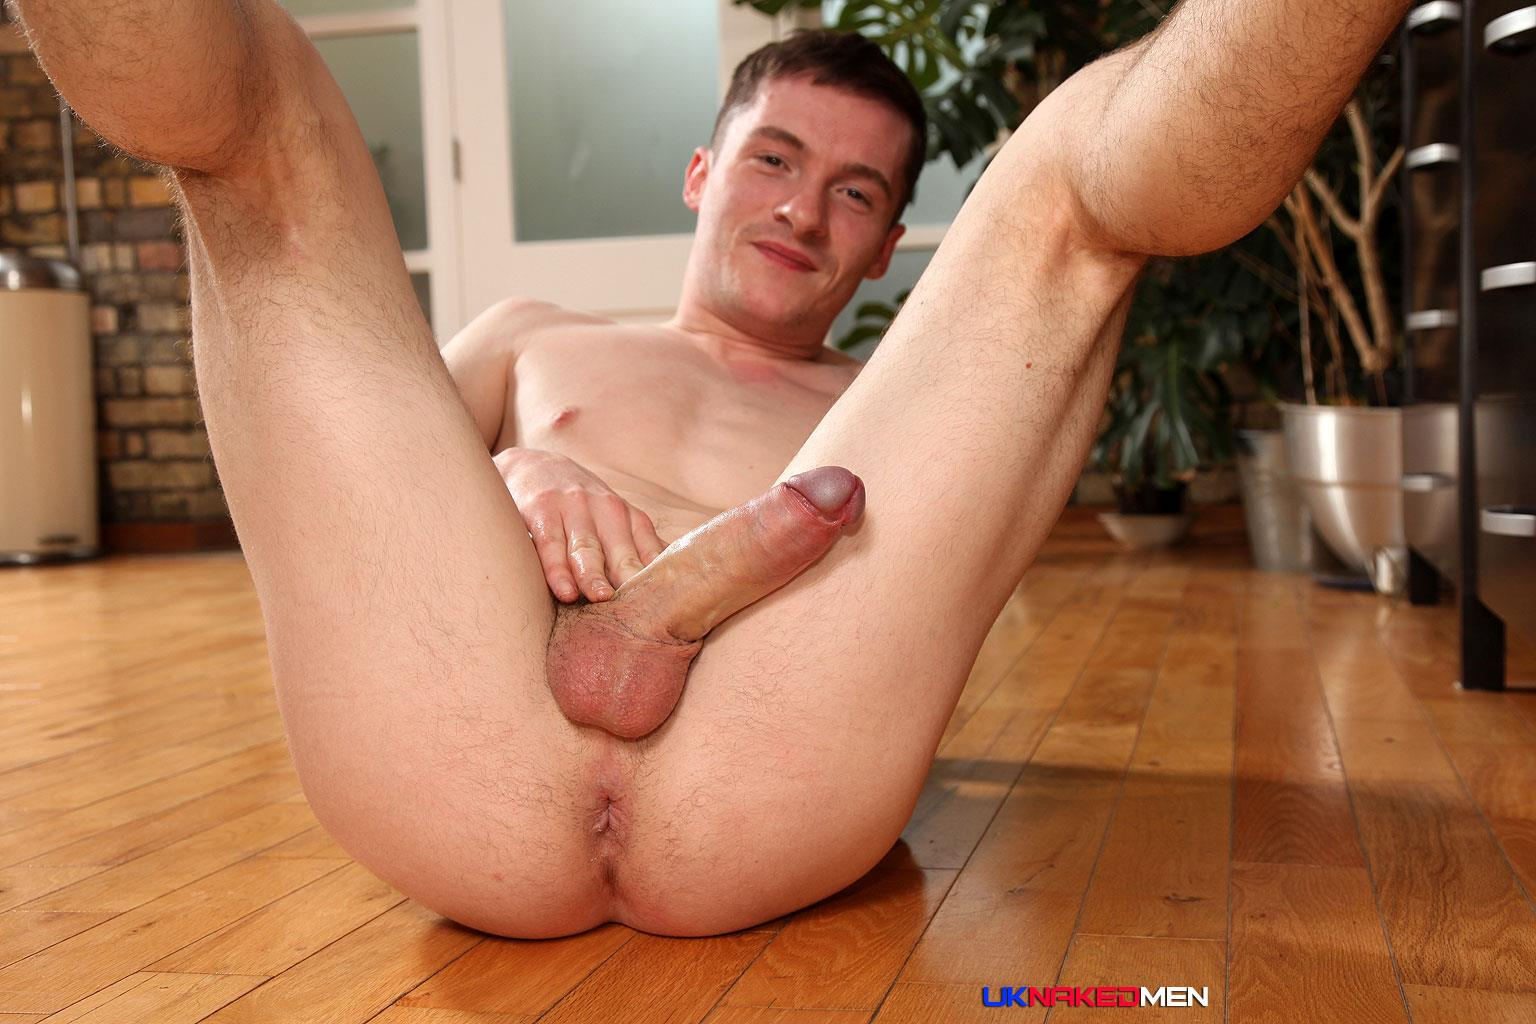 UK-Naked-Men-Daniel-James-Young-British-Guy-Jerking-His-Big-Uncut-Cock-Amateur-Gay-Porn-18 Young British Guy Jerking Off A Huge Uncut Cock